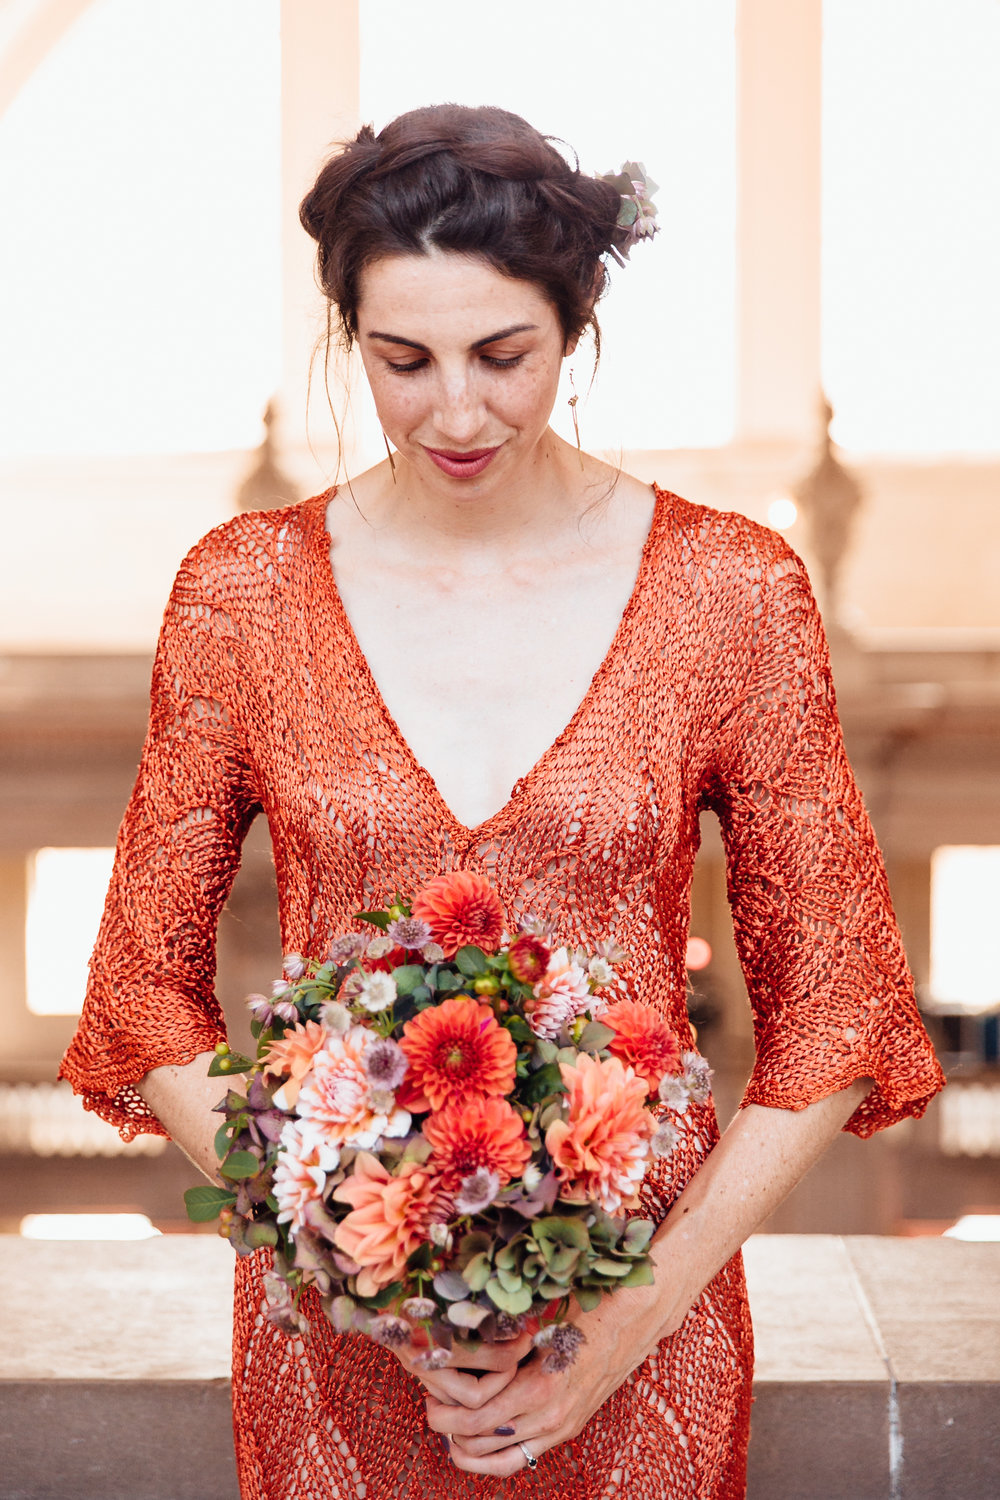 An intimate San Francisco City Hall ceremony, featuring an alternative bride in a bright orange dress.